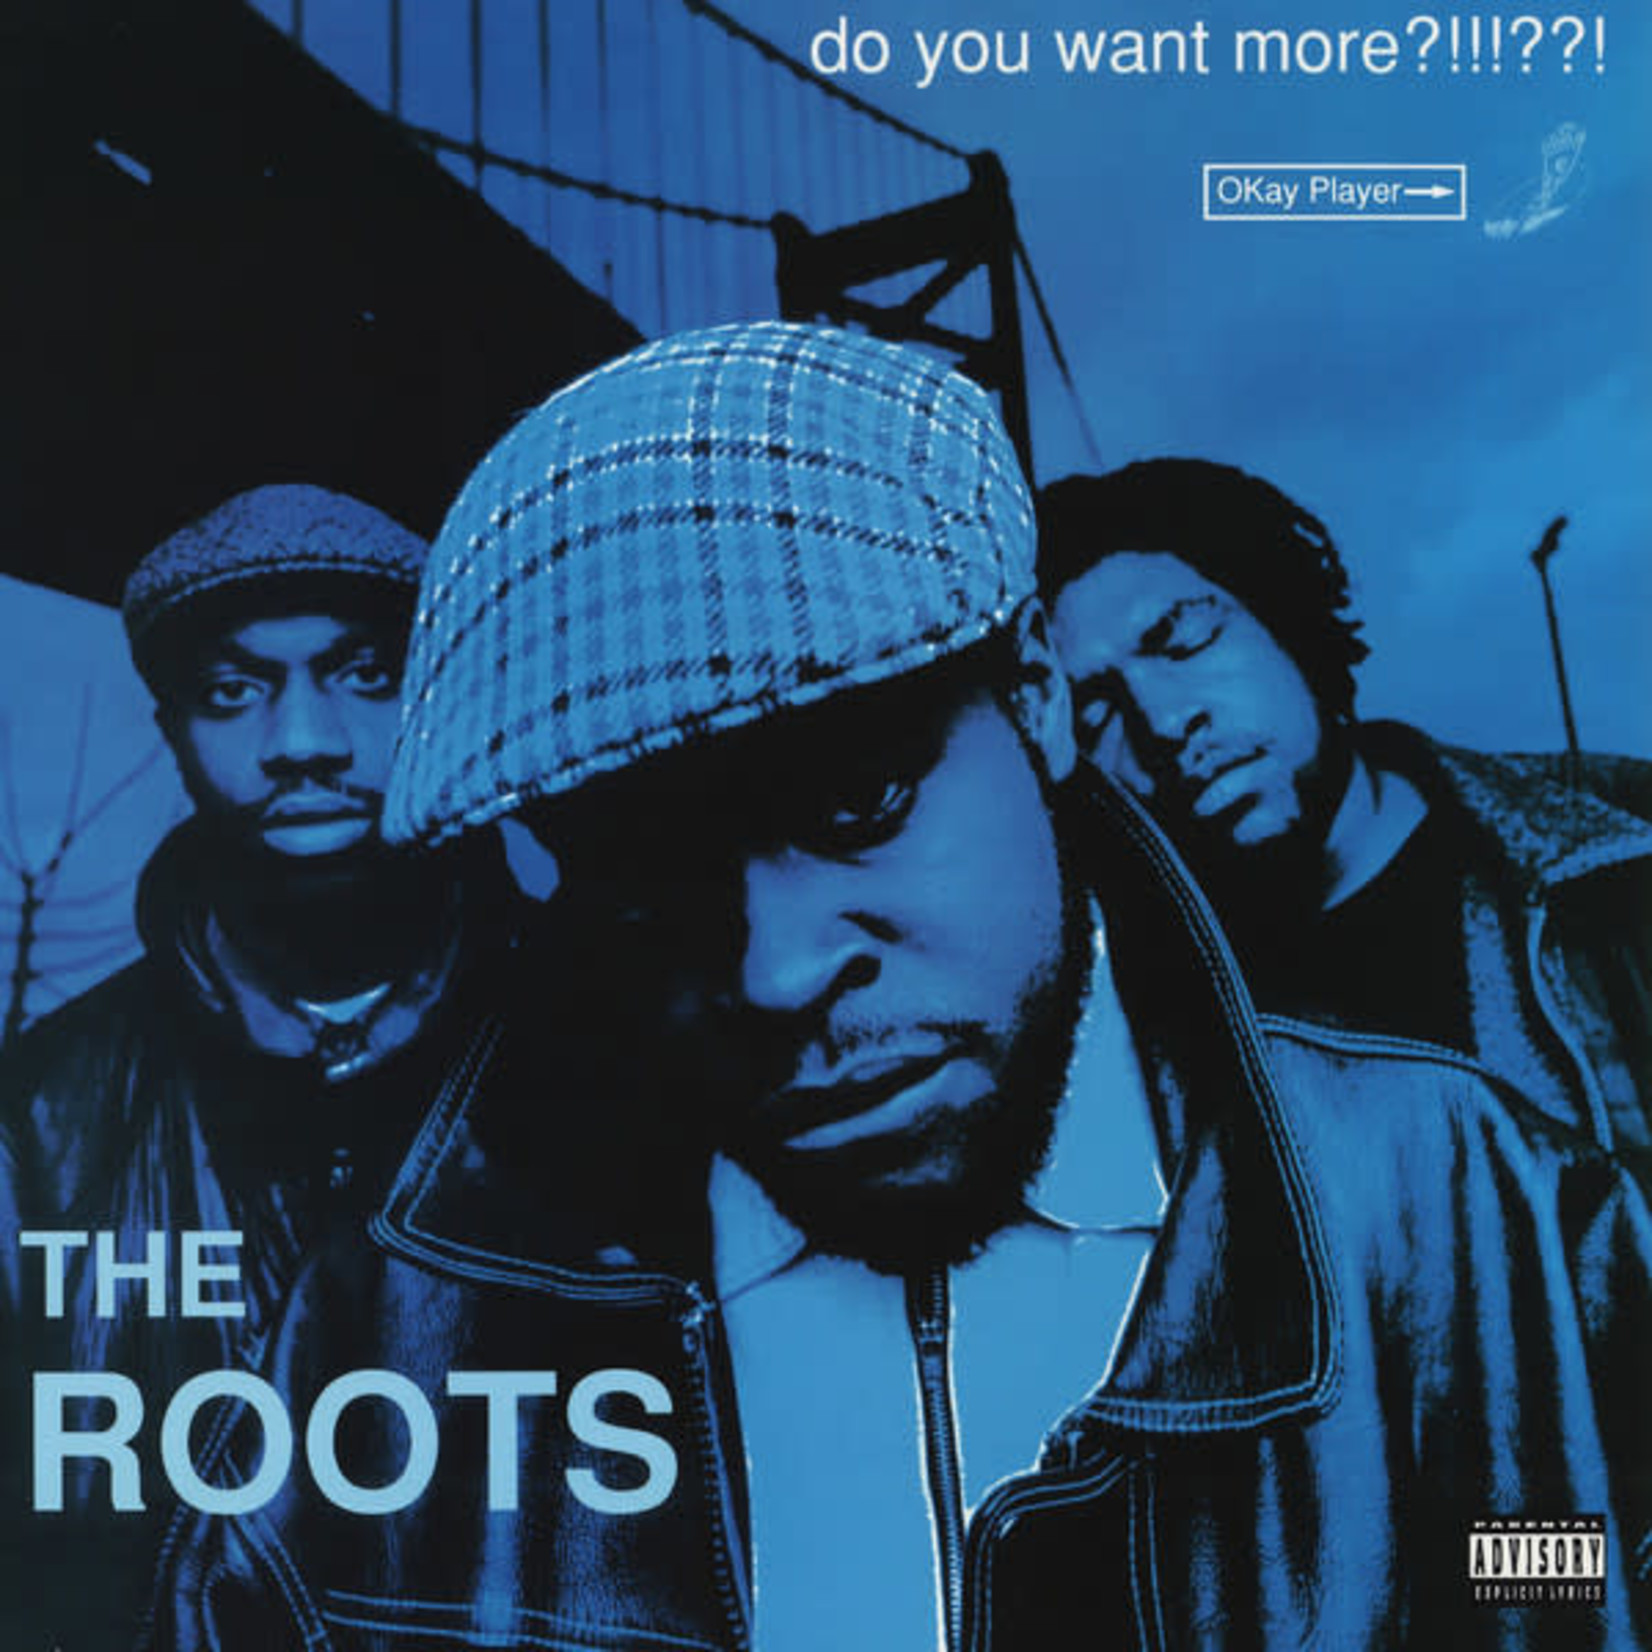 THE ROOTS DO YOU WANT MORE?!!!??!